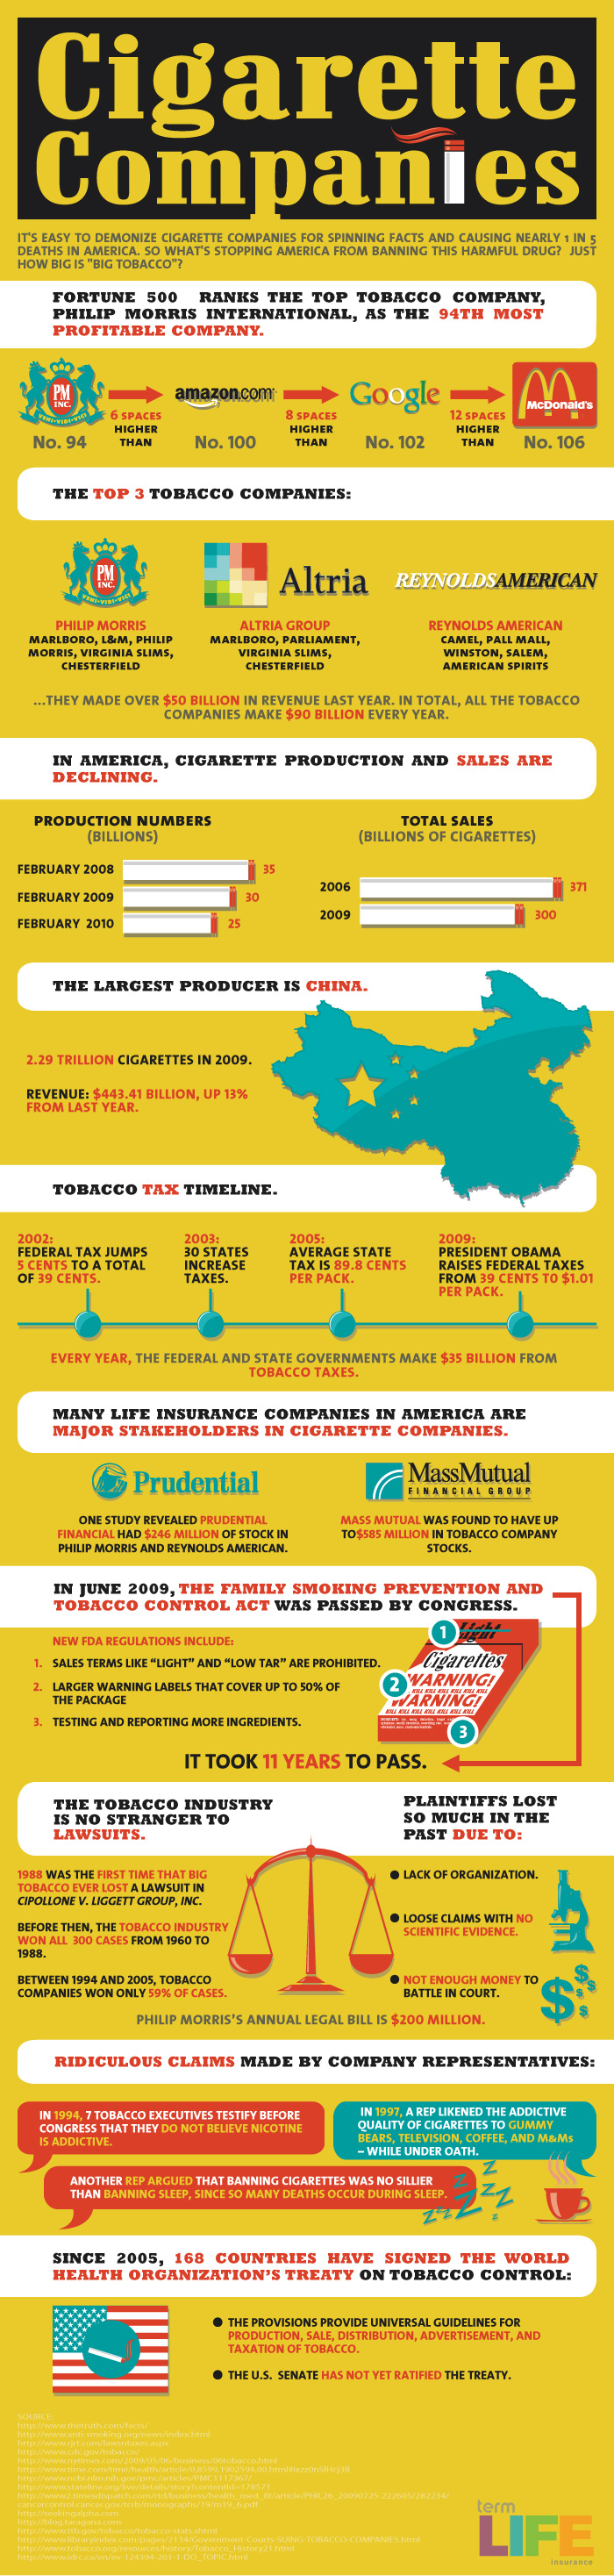 Facts About Cigarette Companies